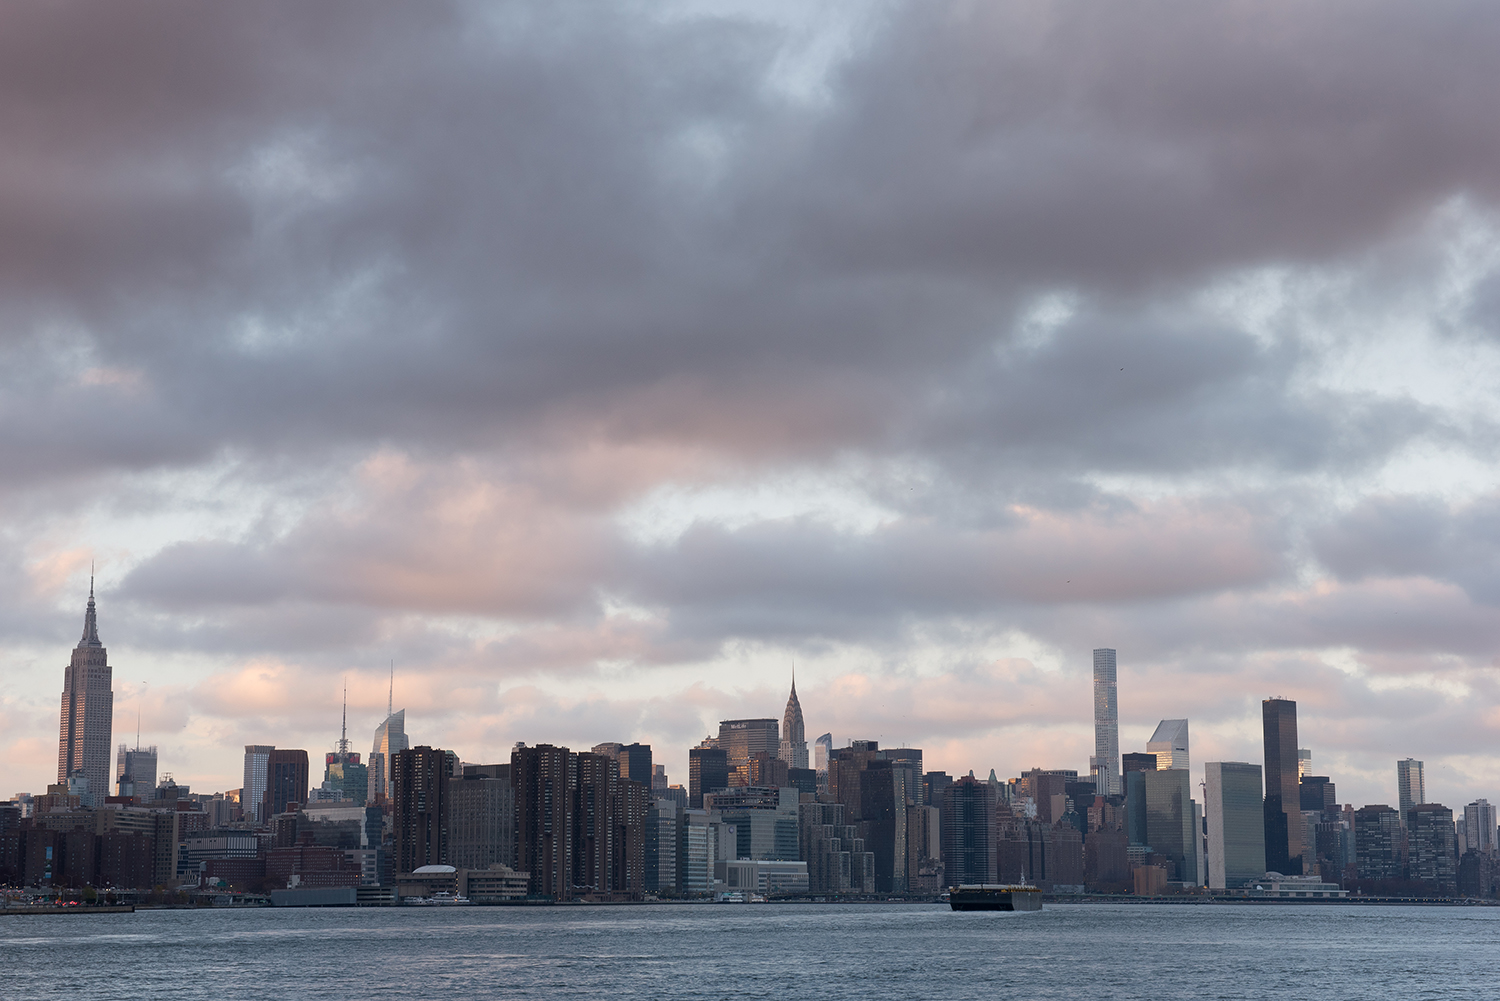 View of Midtown as seen from Williamsburg, Brooklyn, NYC.